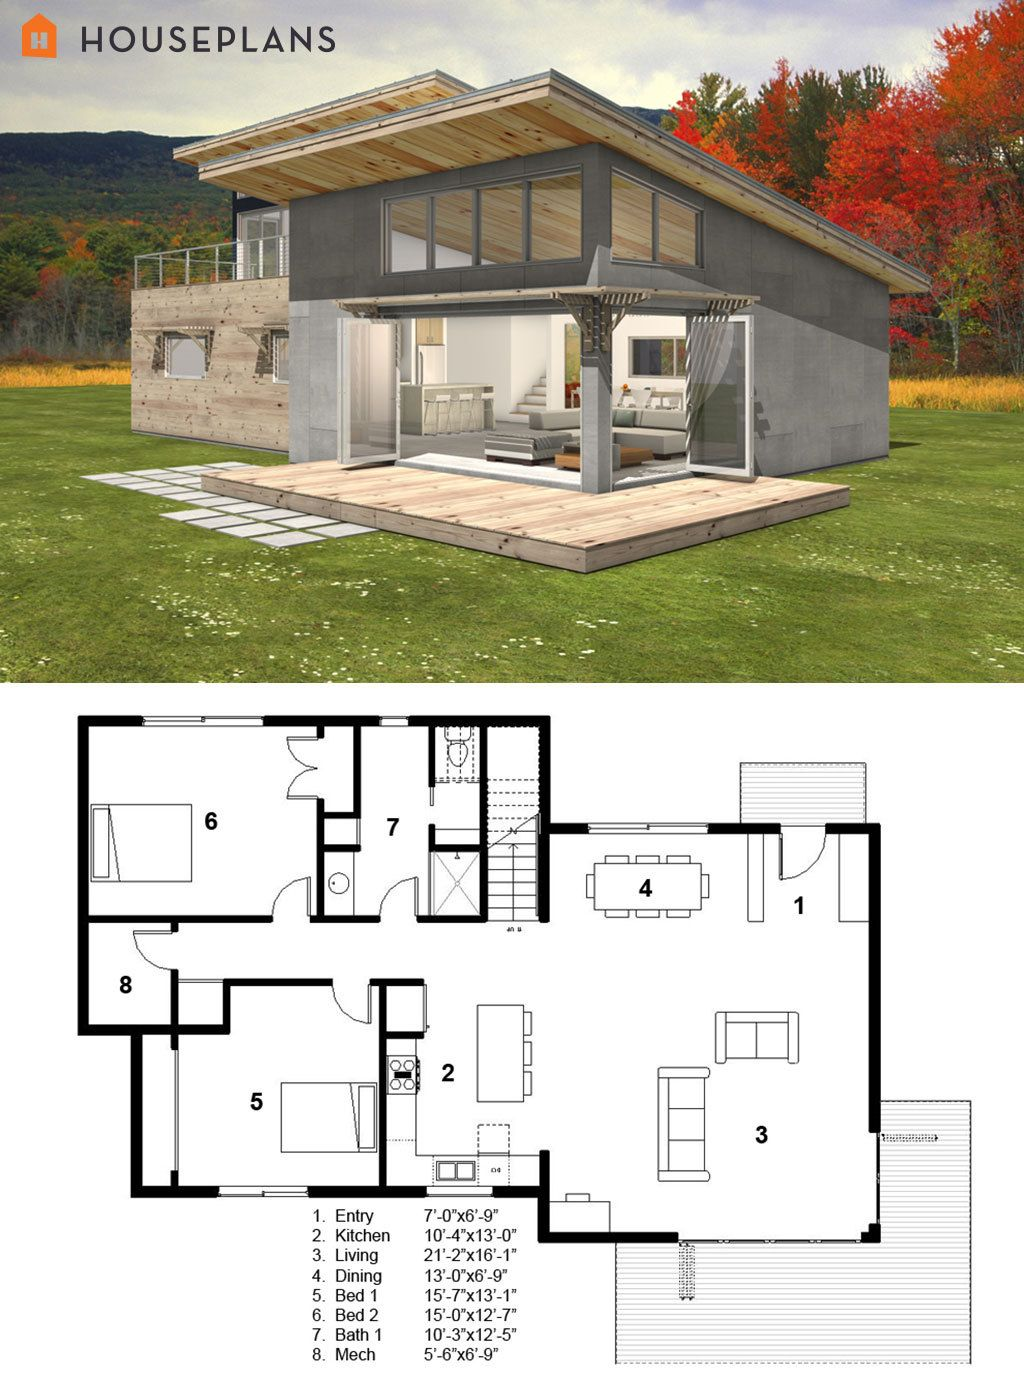 Small modern cabin house plan by freegreen energy for Cottage layout design